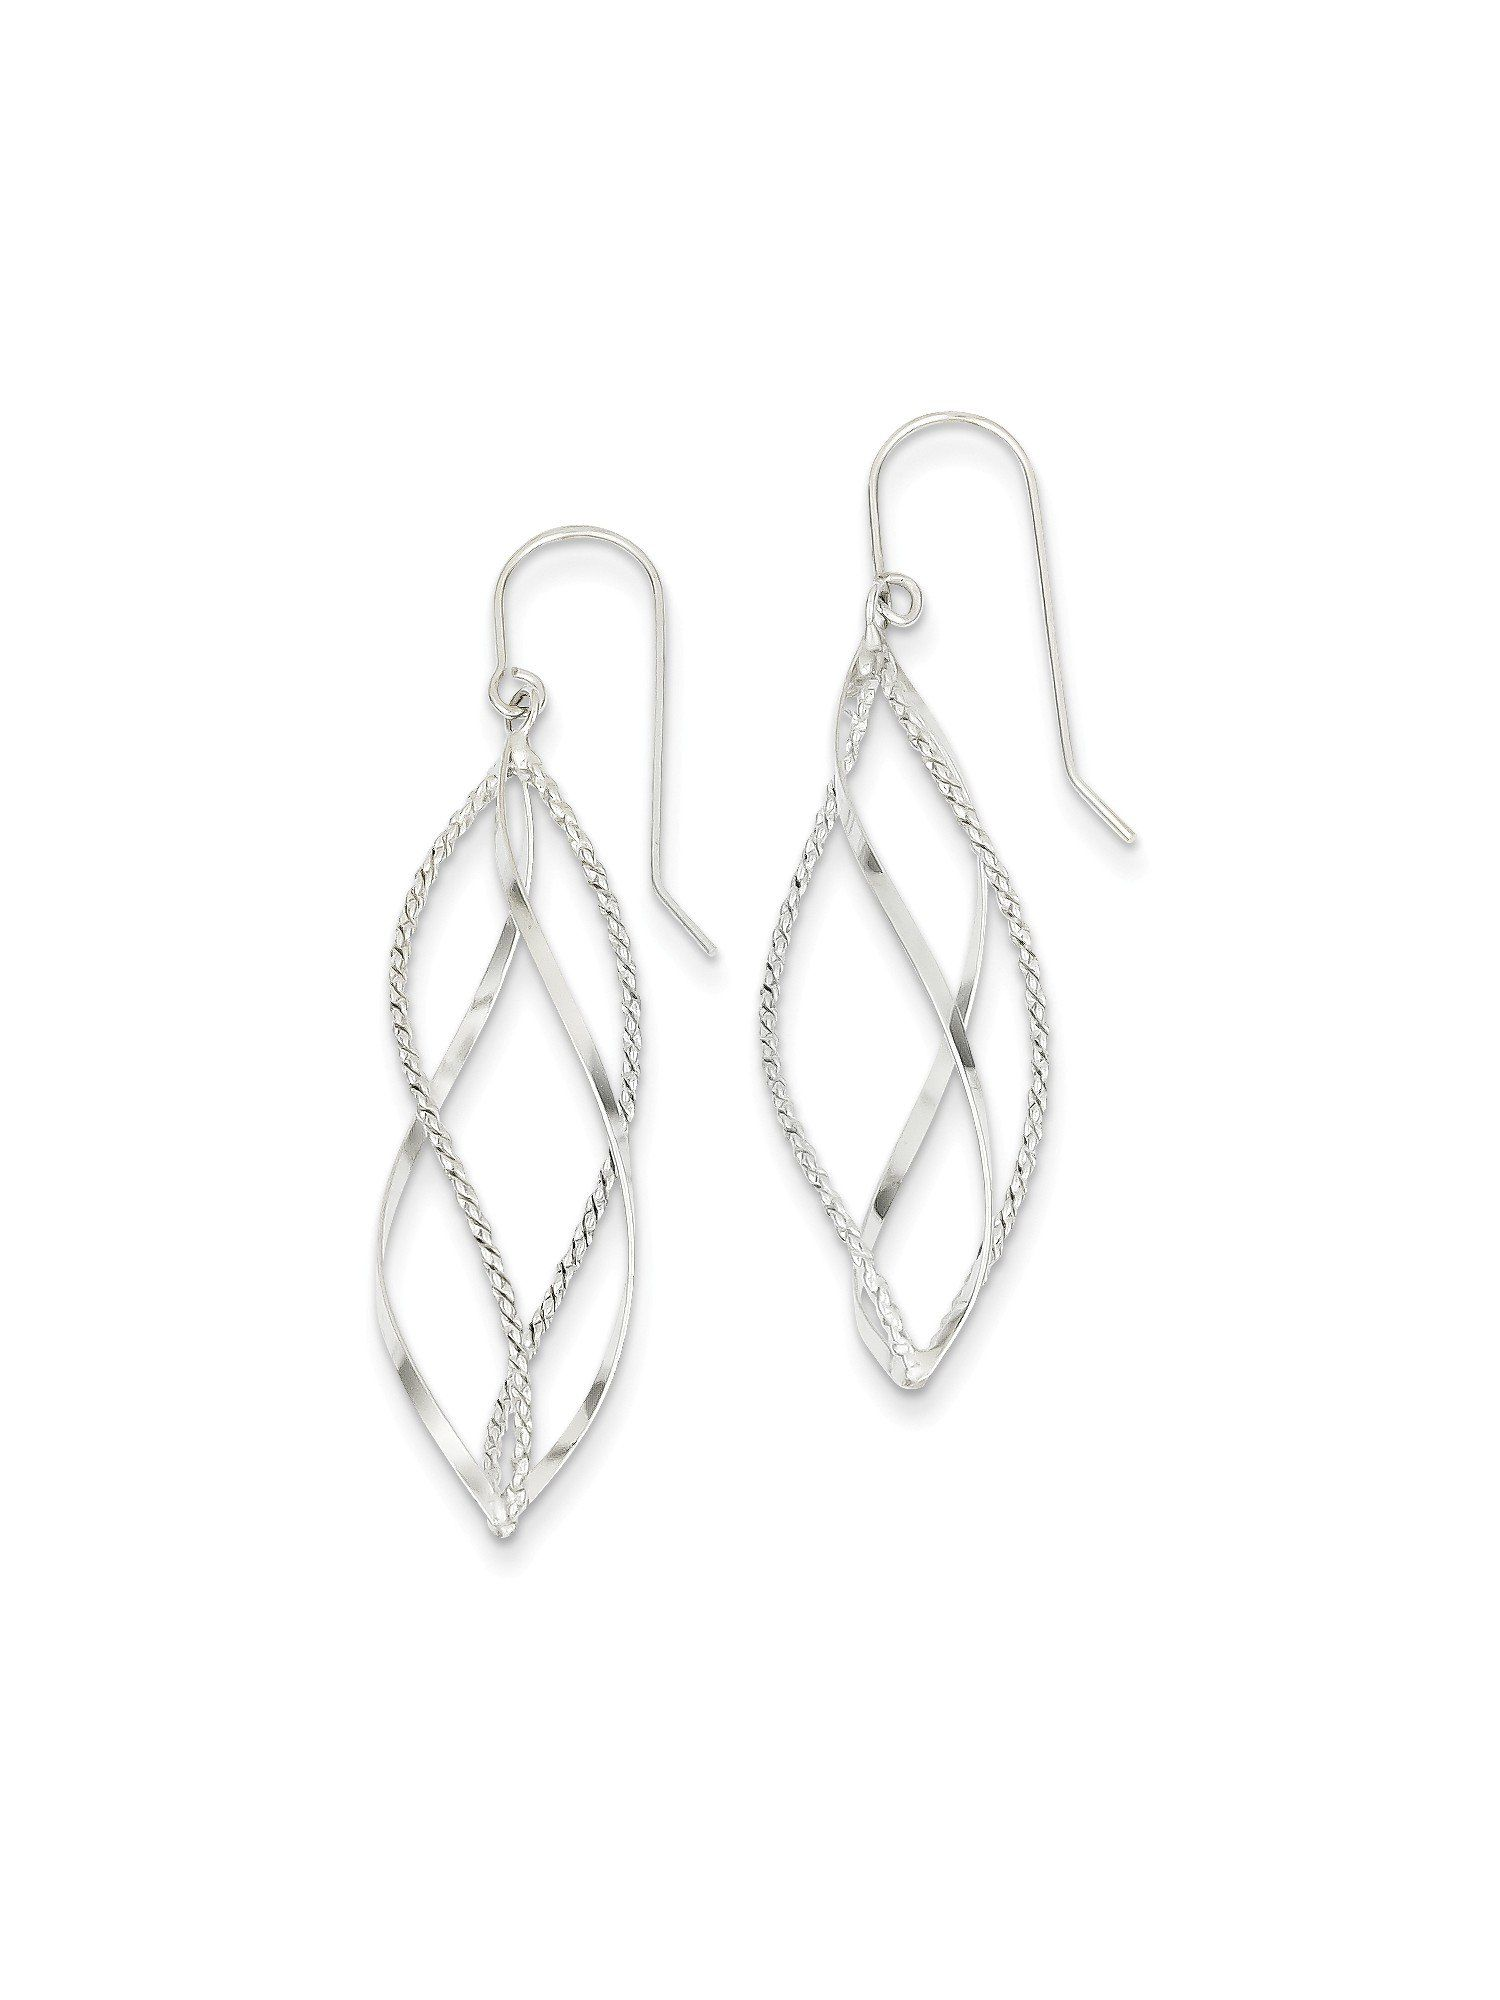 14k White Gold Textured Twisted Dangle Earrings